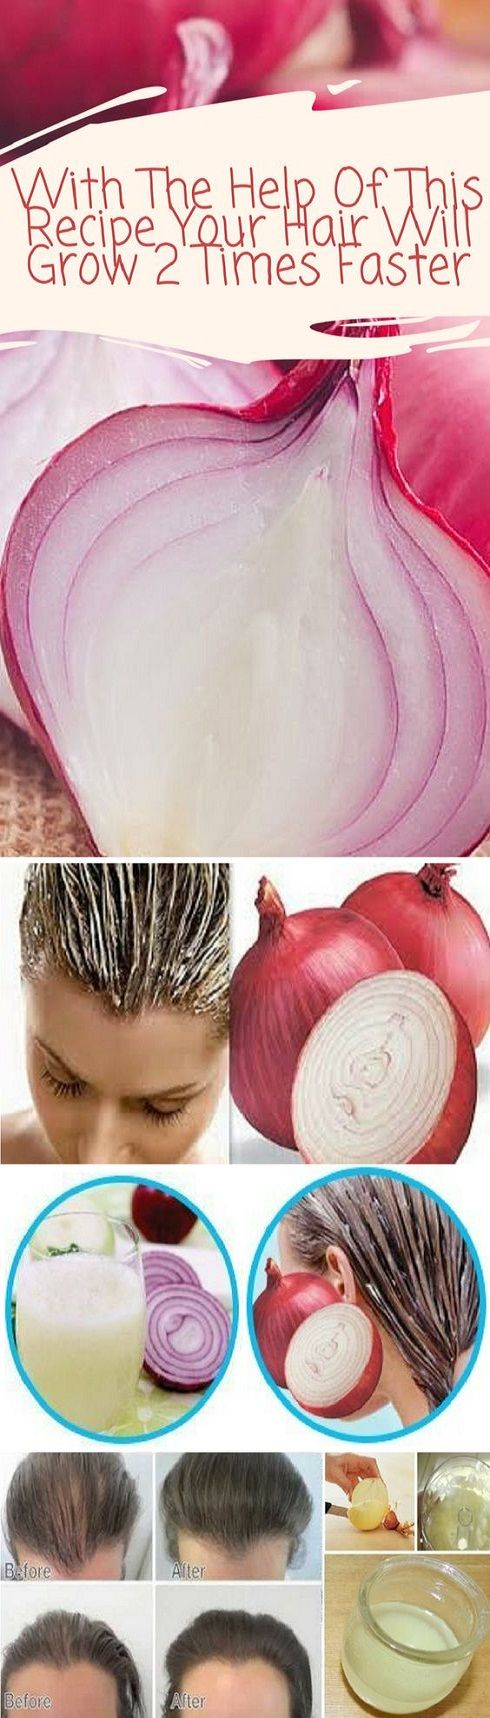 With The Help Of This Recipe Your Hair Will Grow 2 Times Faster